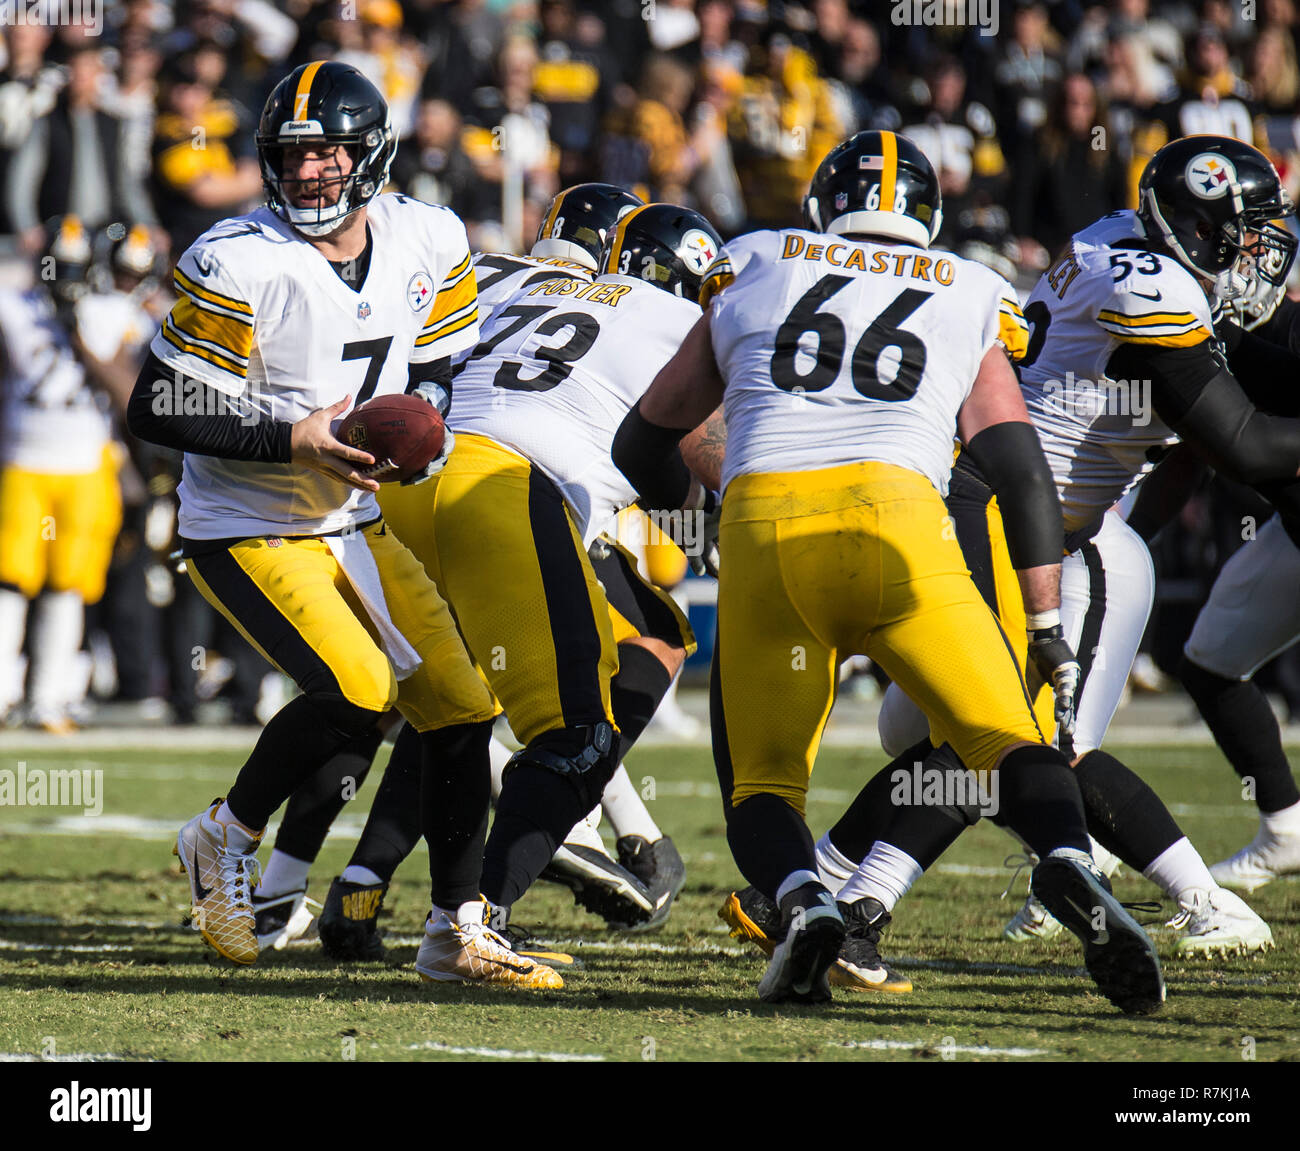 Dec 09 2018 Oakland U.S.A CA Pittsburgh Steelers quarterback Ben Roethlisberger (7) hands off the ball during the NFL Football game between Pittsburgh Steelers and the Oakland Raiders 21-24 lost at O.co Coliseum Stadium Oakland Calif. Thurman James/CSM - Stock Image